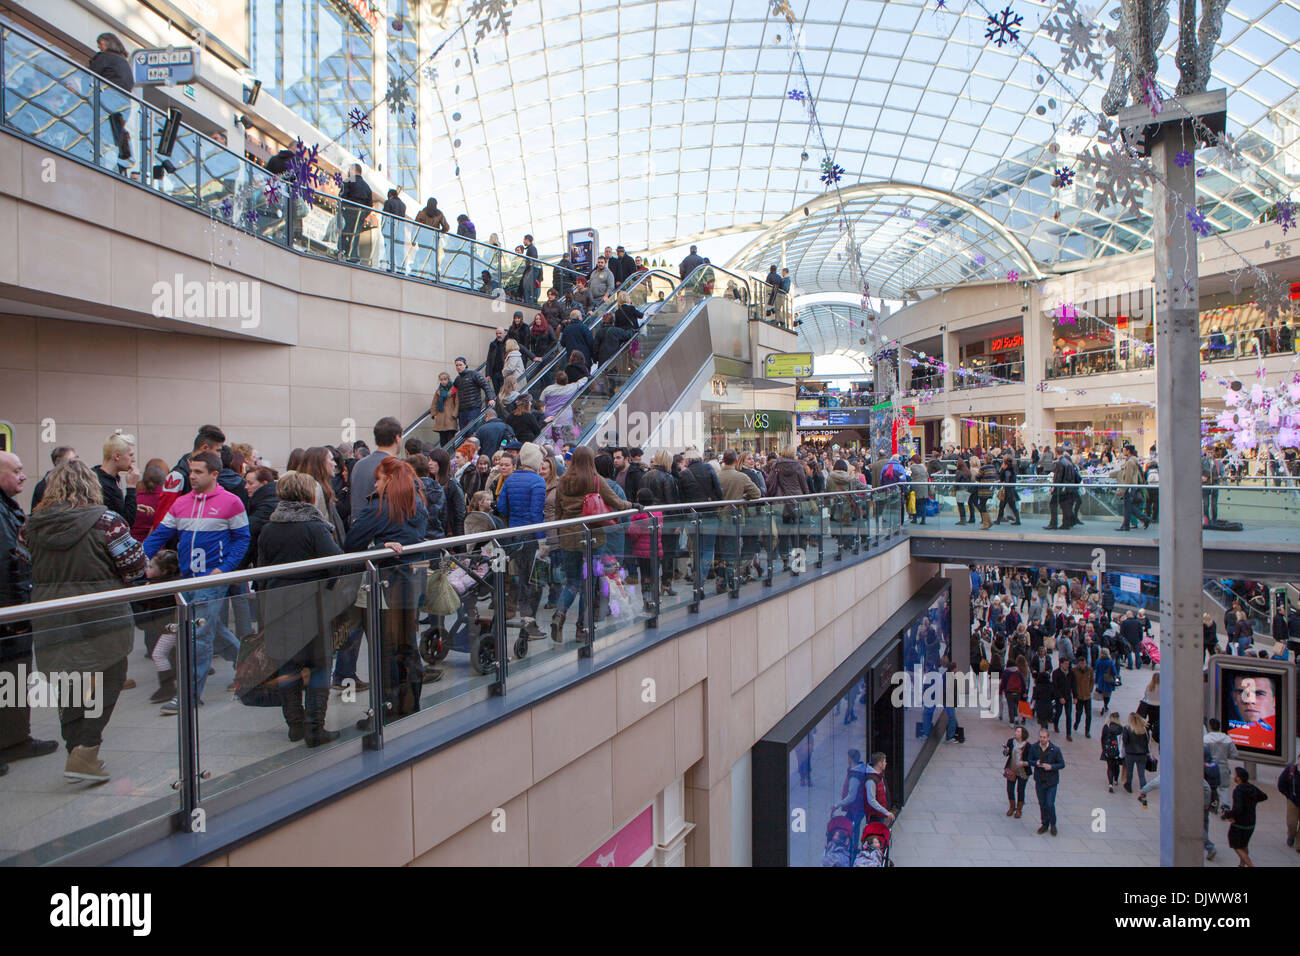 Inside Trinity Leeds shopping and leisure centre in Leeds, England - Stock Image